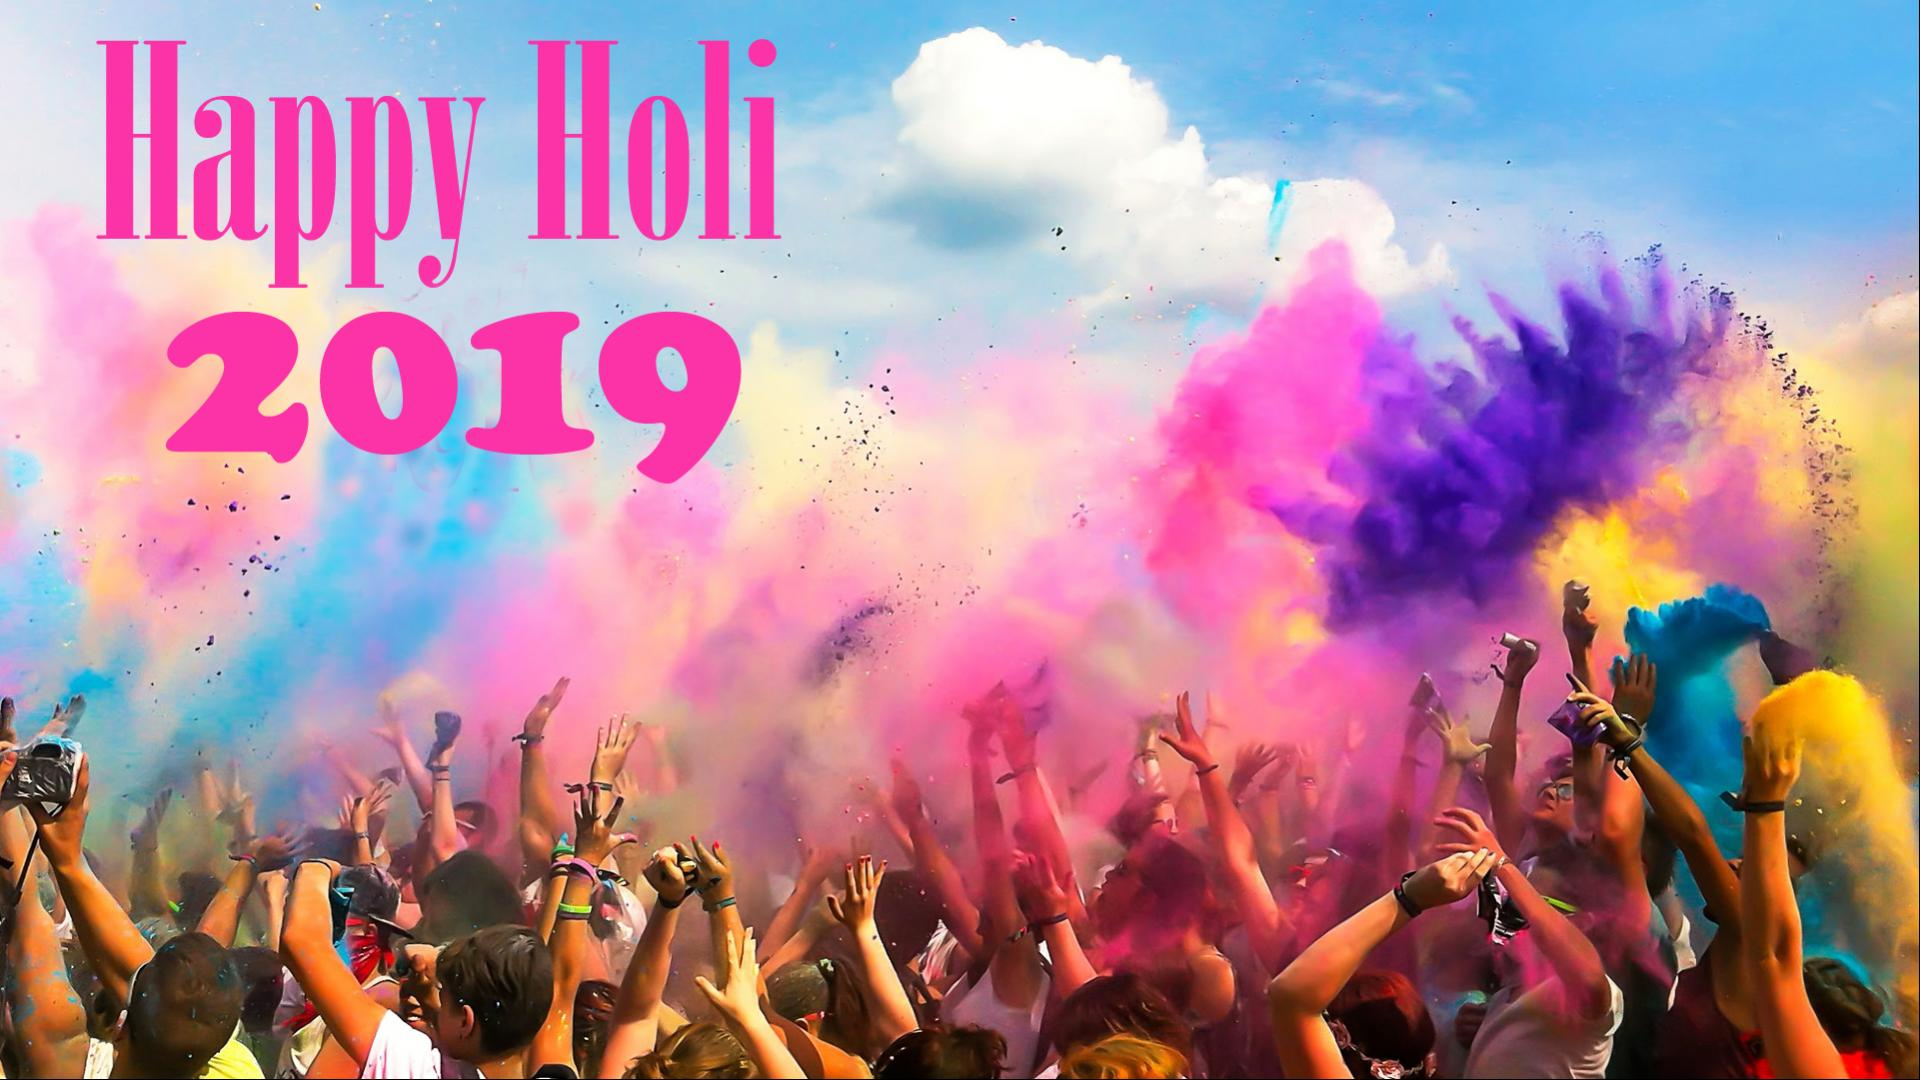 2019 Holi Hd Images For Wallpaper Hd Wallpapers Wallpapers